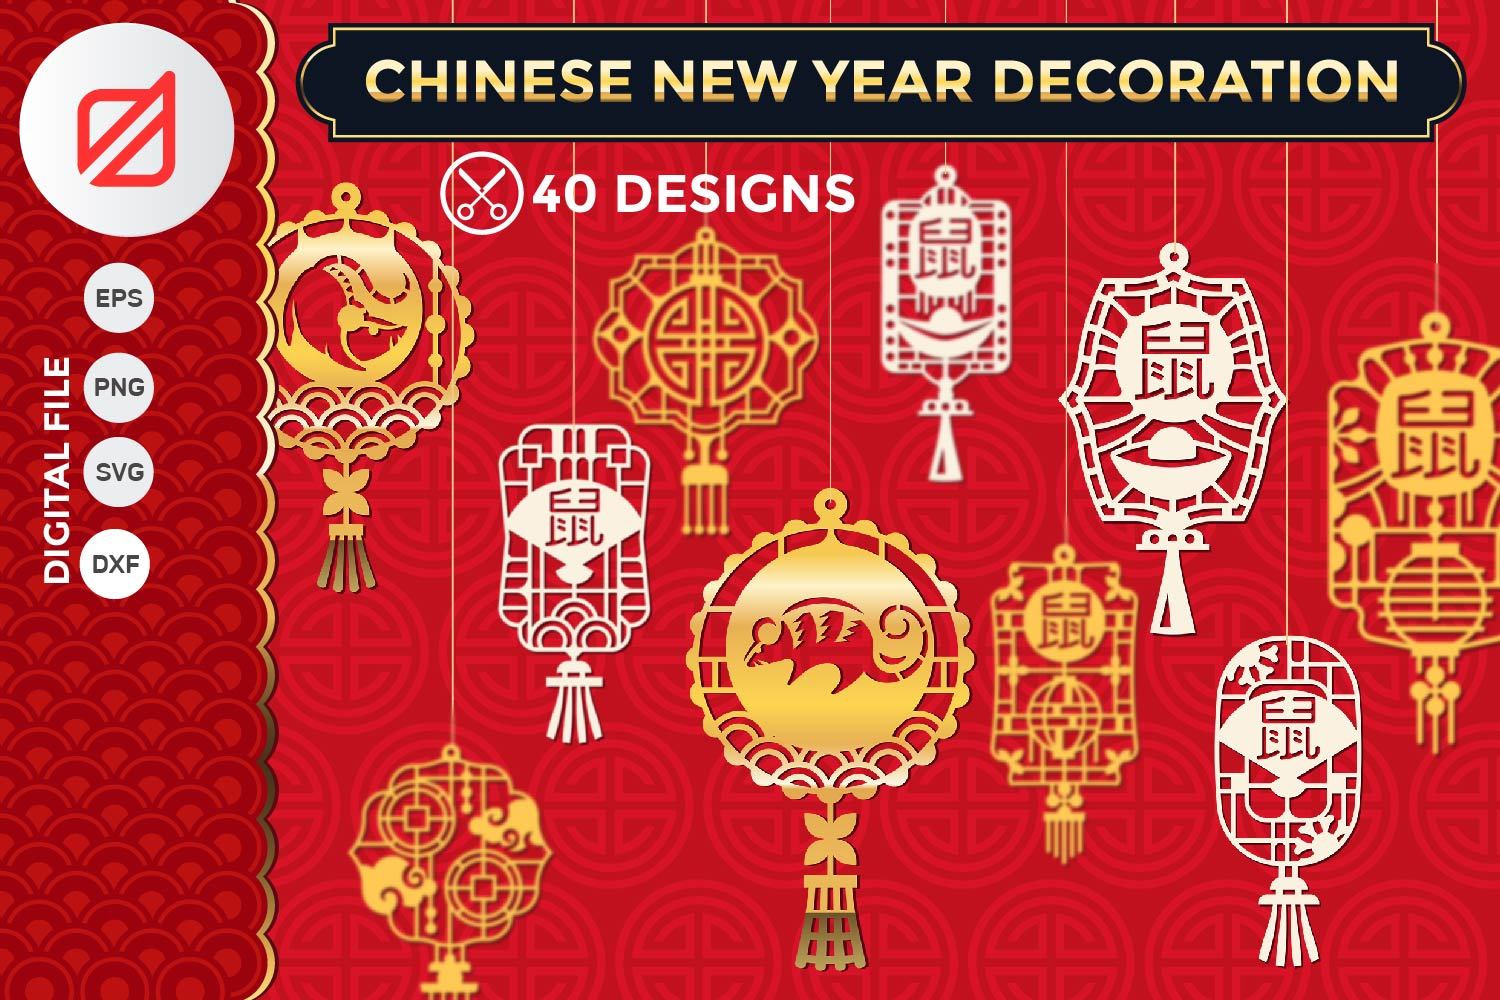 Download Free Chinese New Year Decorations Graphic By Illusatrian Creative for Cricut Explore, Silhouette and other cutting machines.